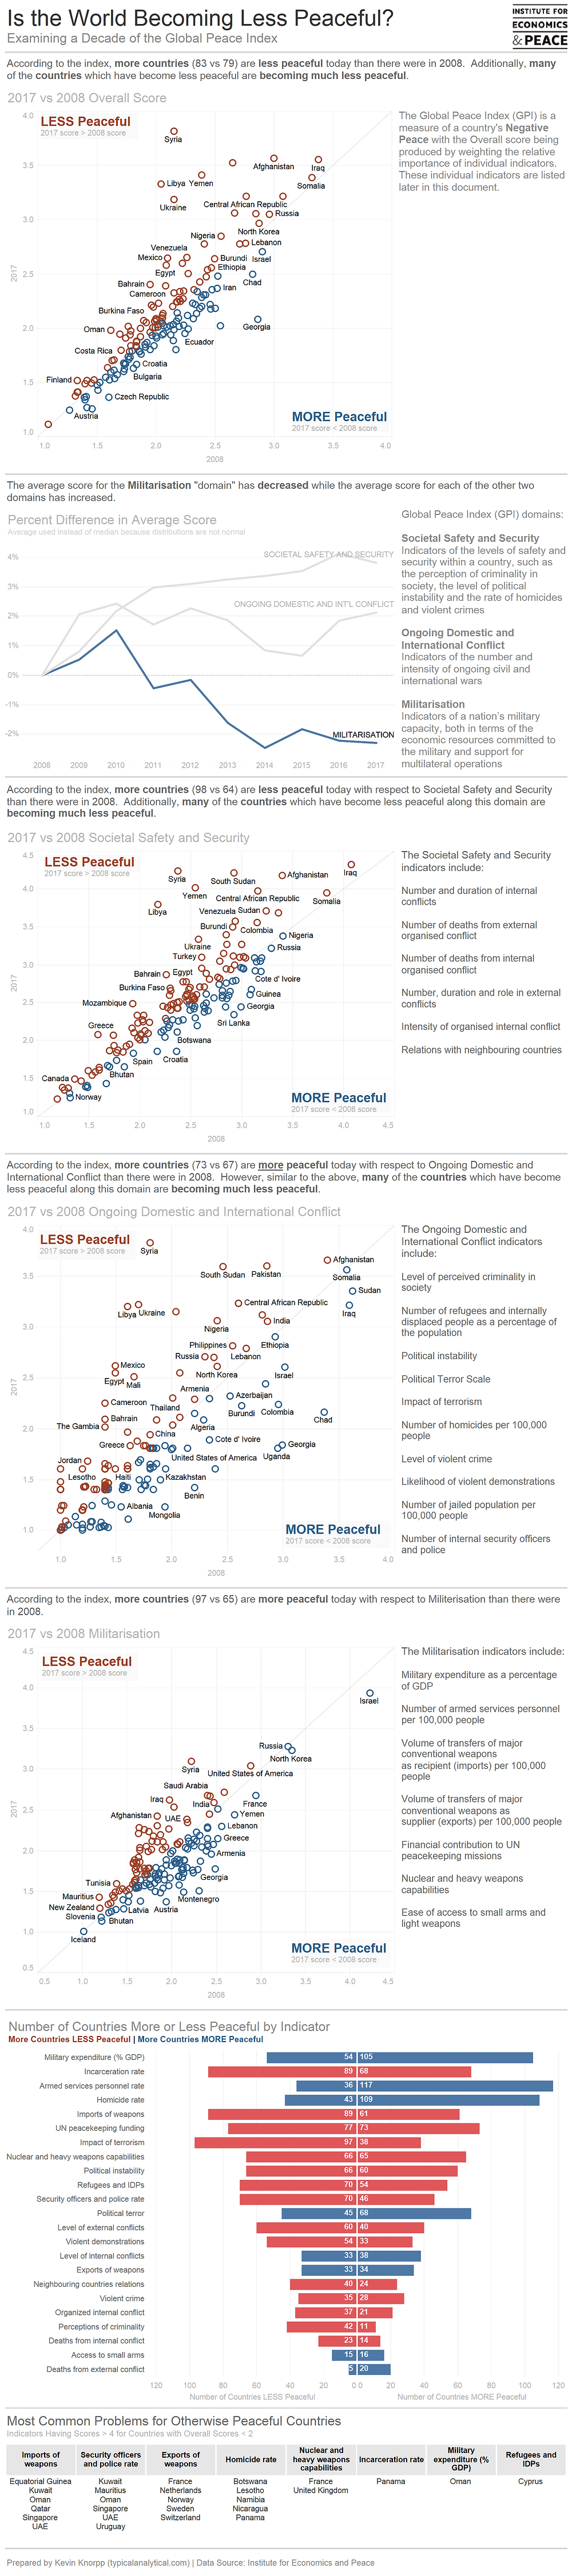 Data visualization by Kevin Knorpp